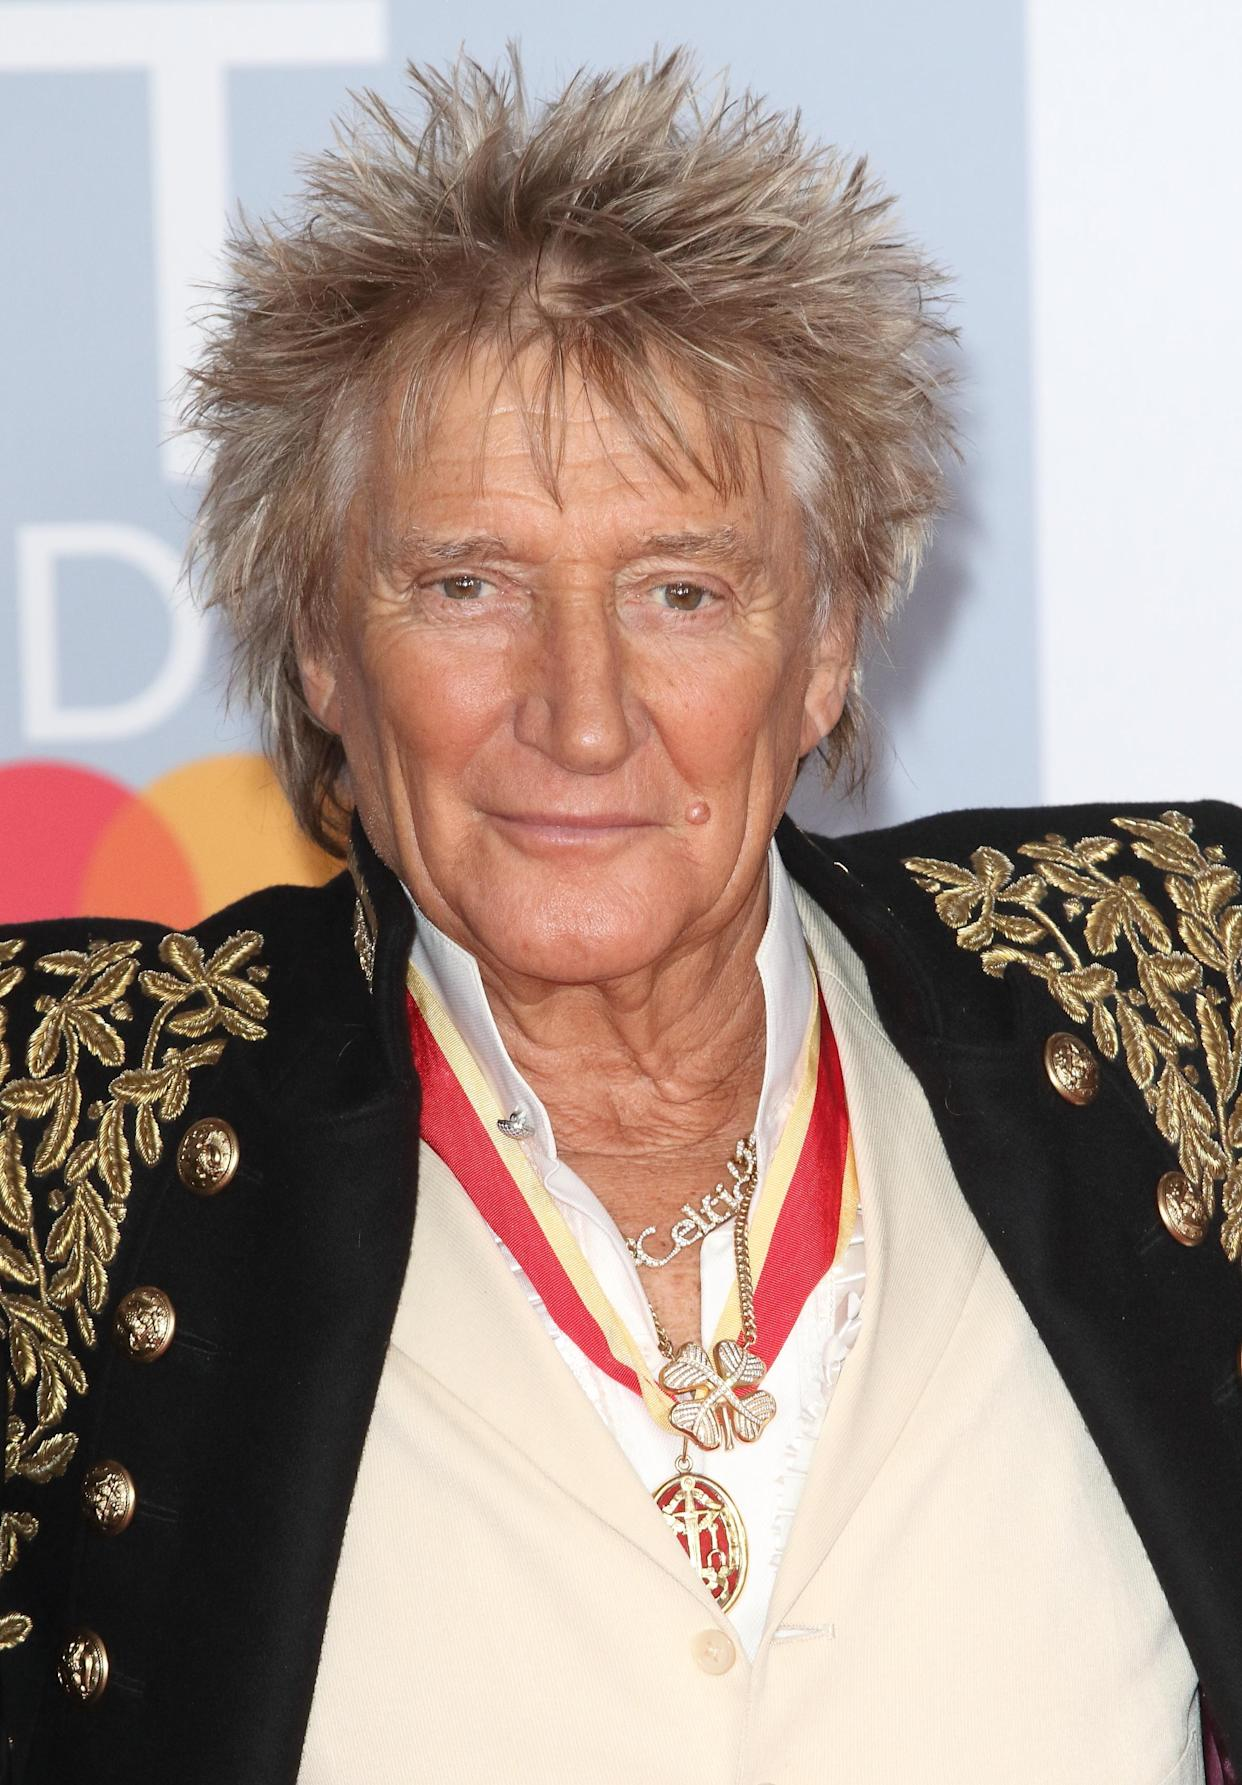 Rod Stewart attends the 40th Brit Awards Red Carpet arrivals at The O2 Arena in London. (Photo by Keith Mayhew / SOPA Images/Sipa USA)